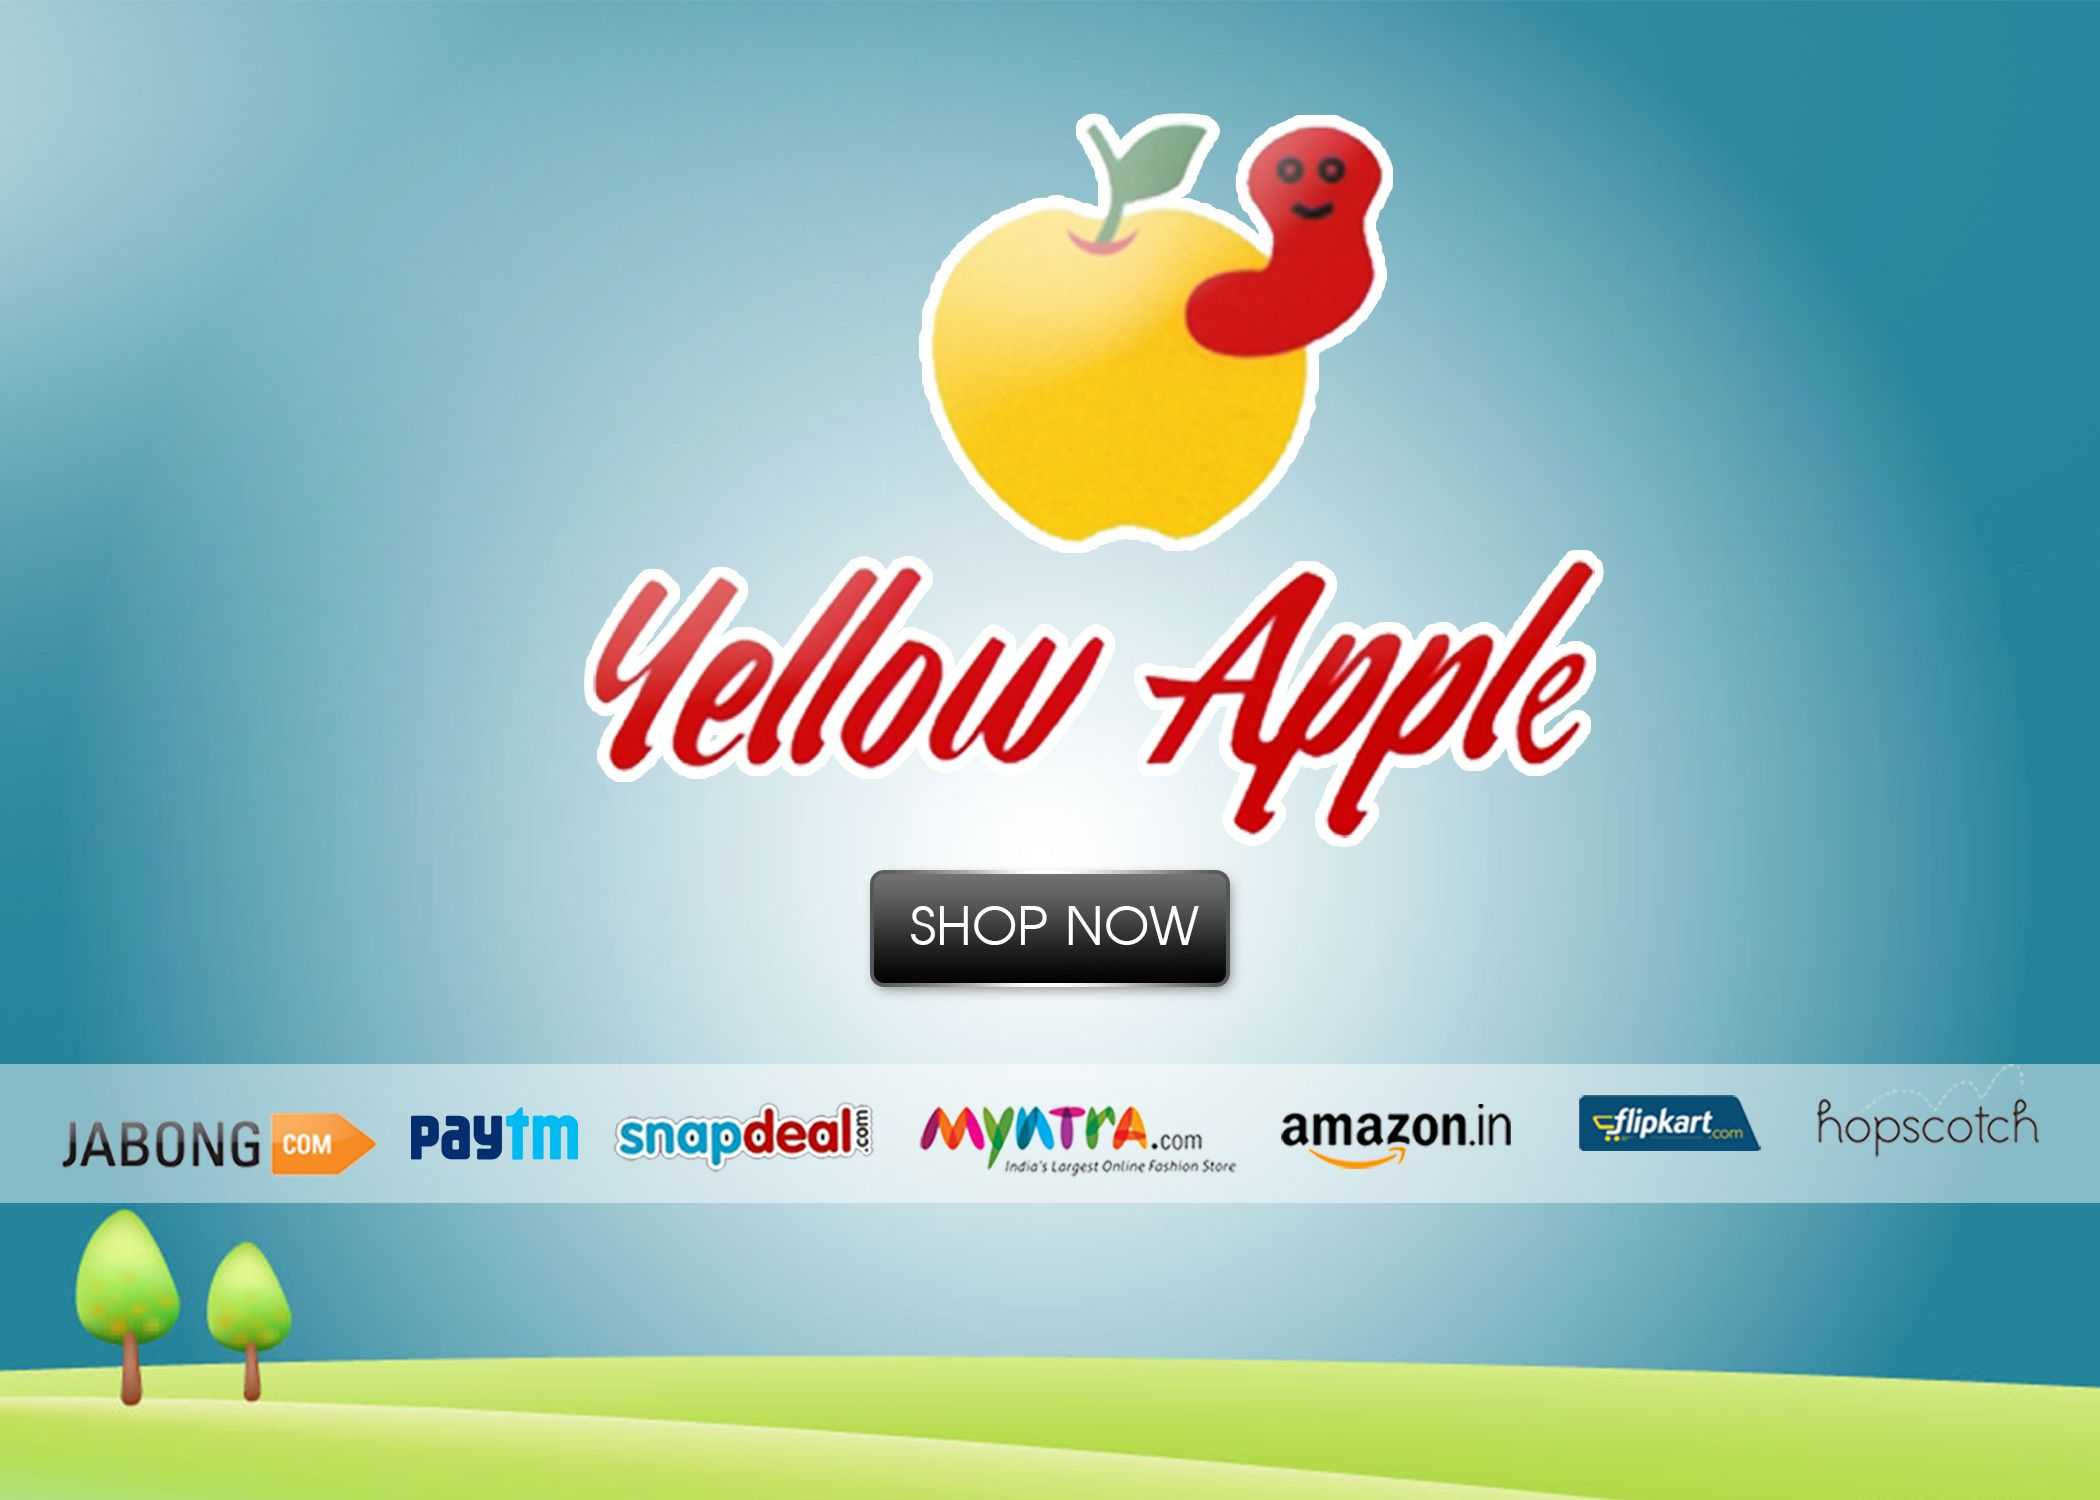 Shop this Winters for your kids wiht Yellow Apple